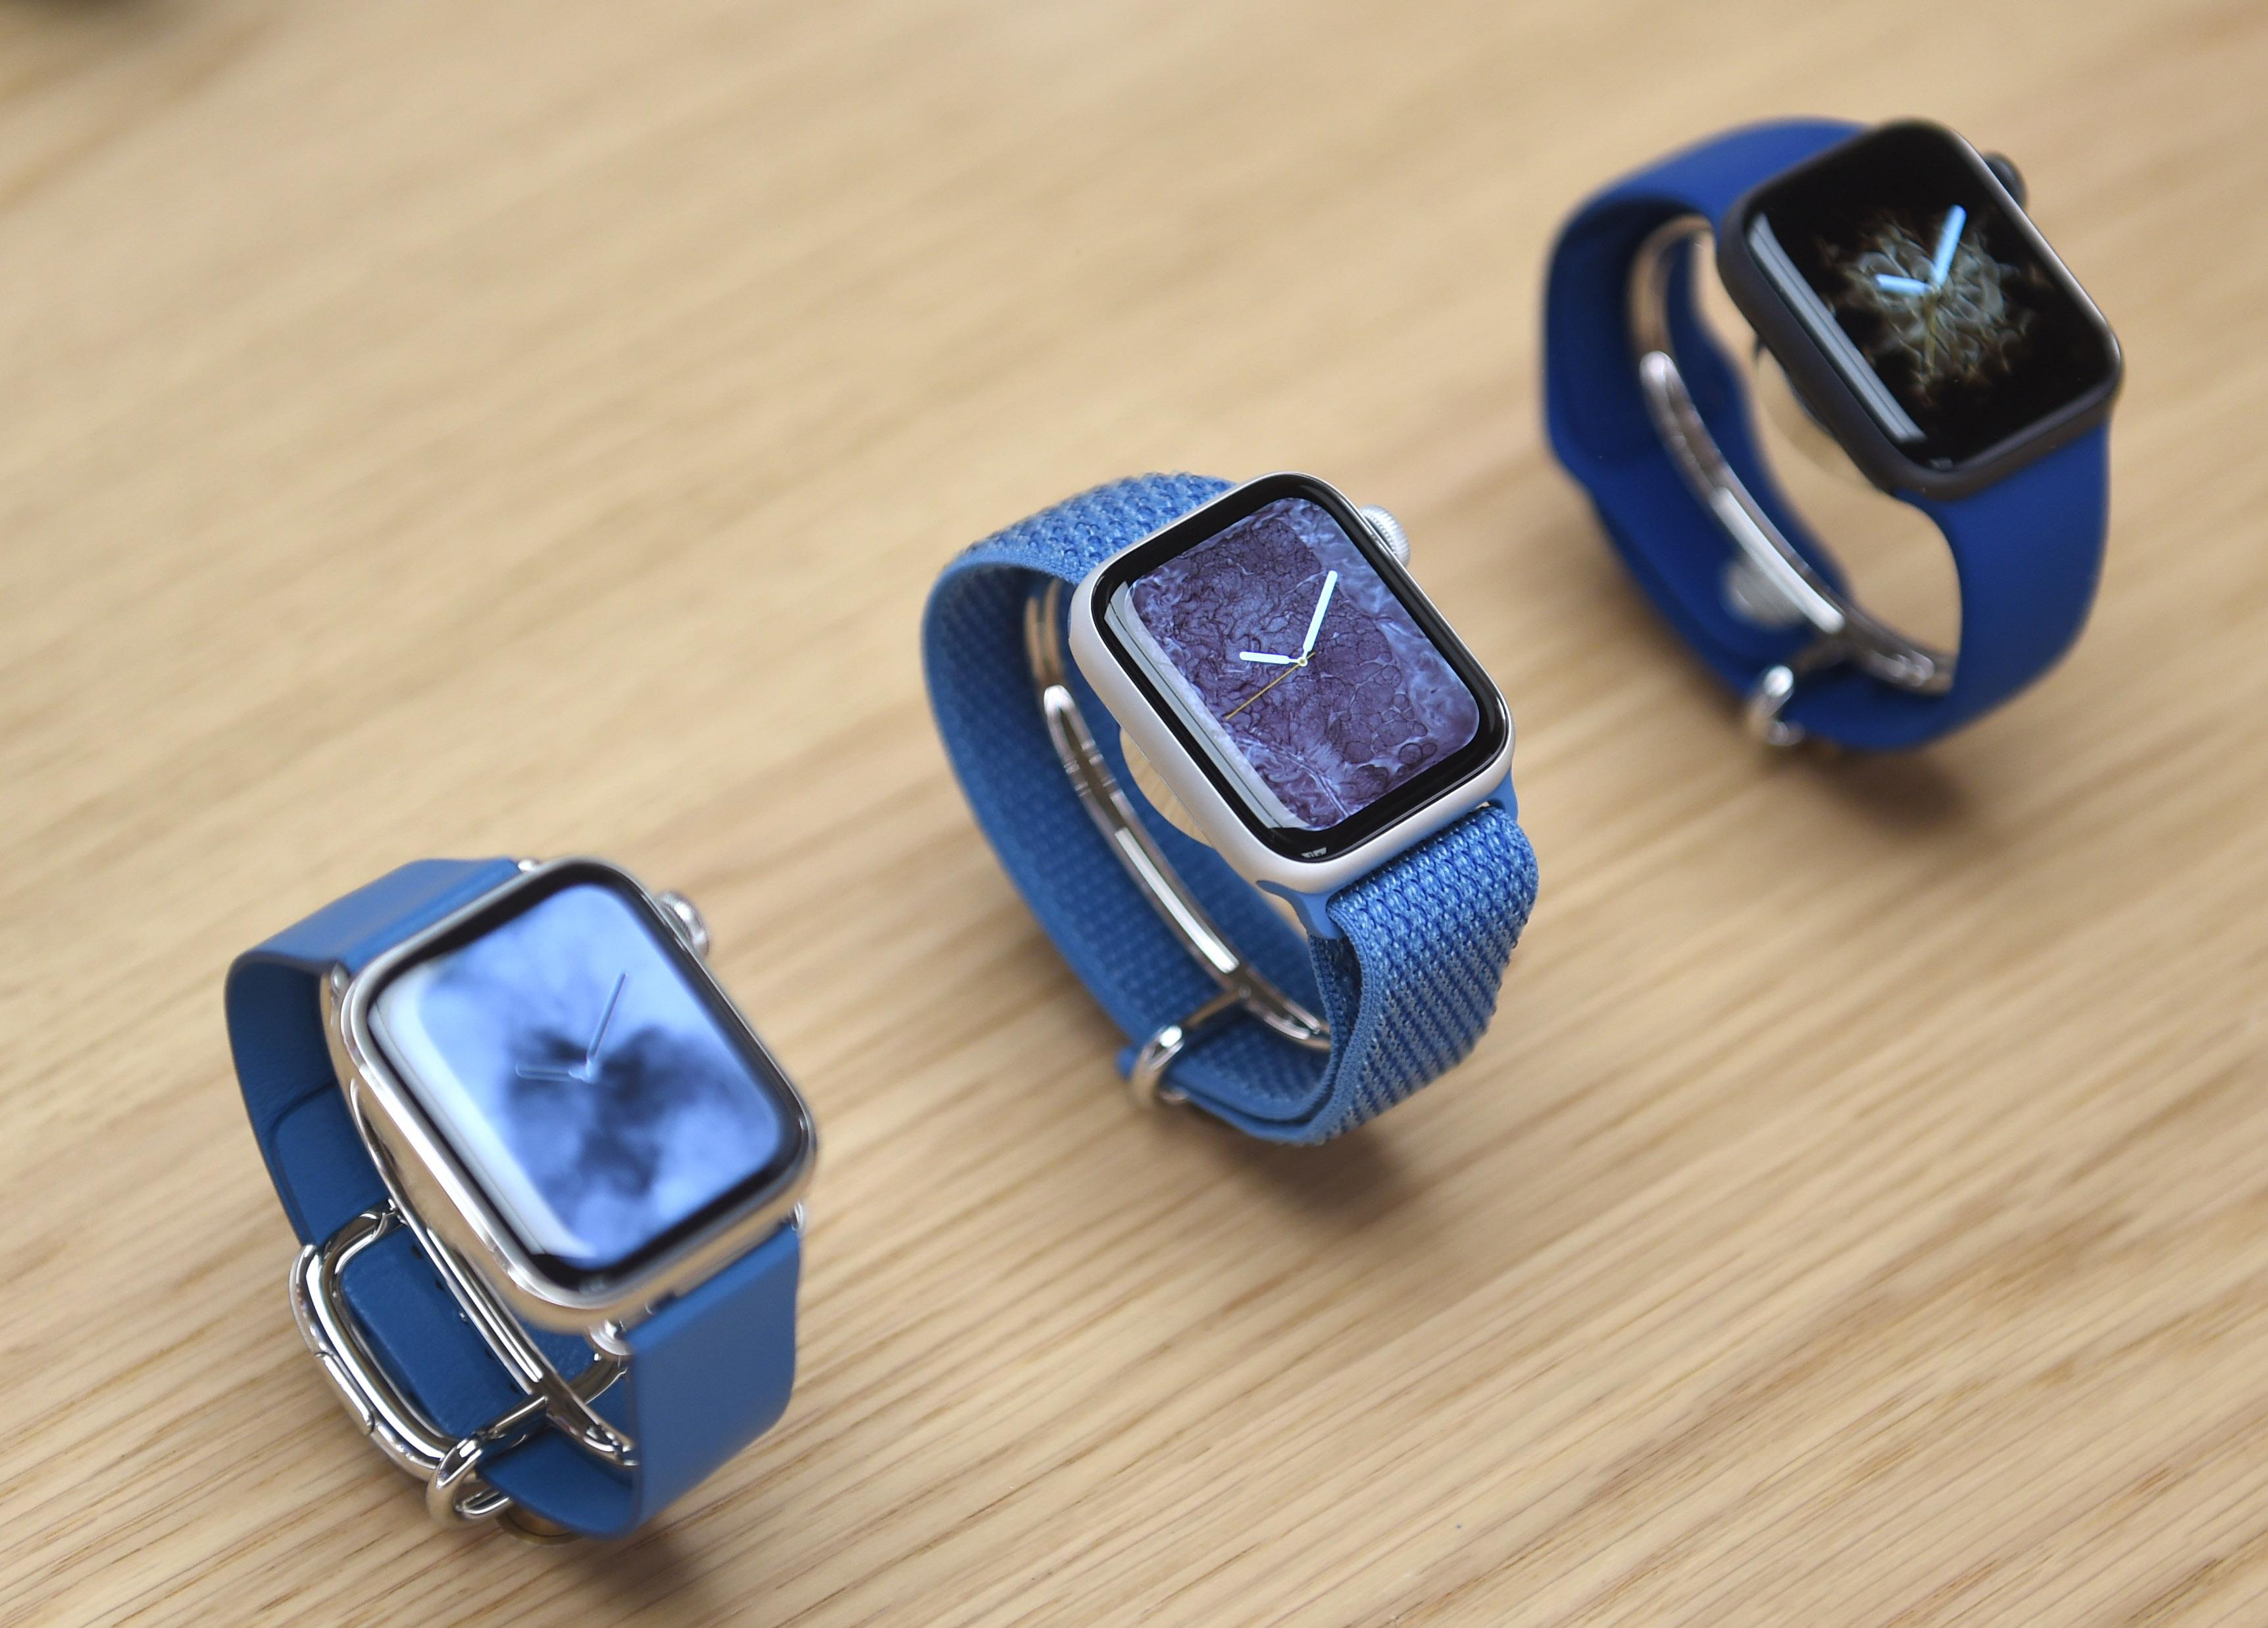 Blue Apple Watches